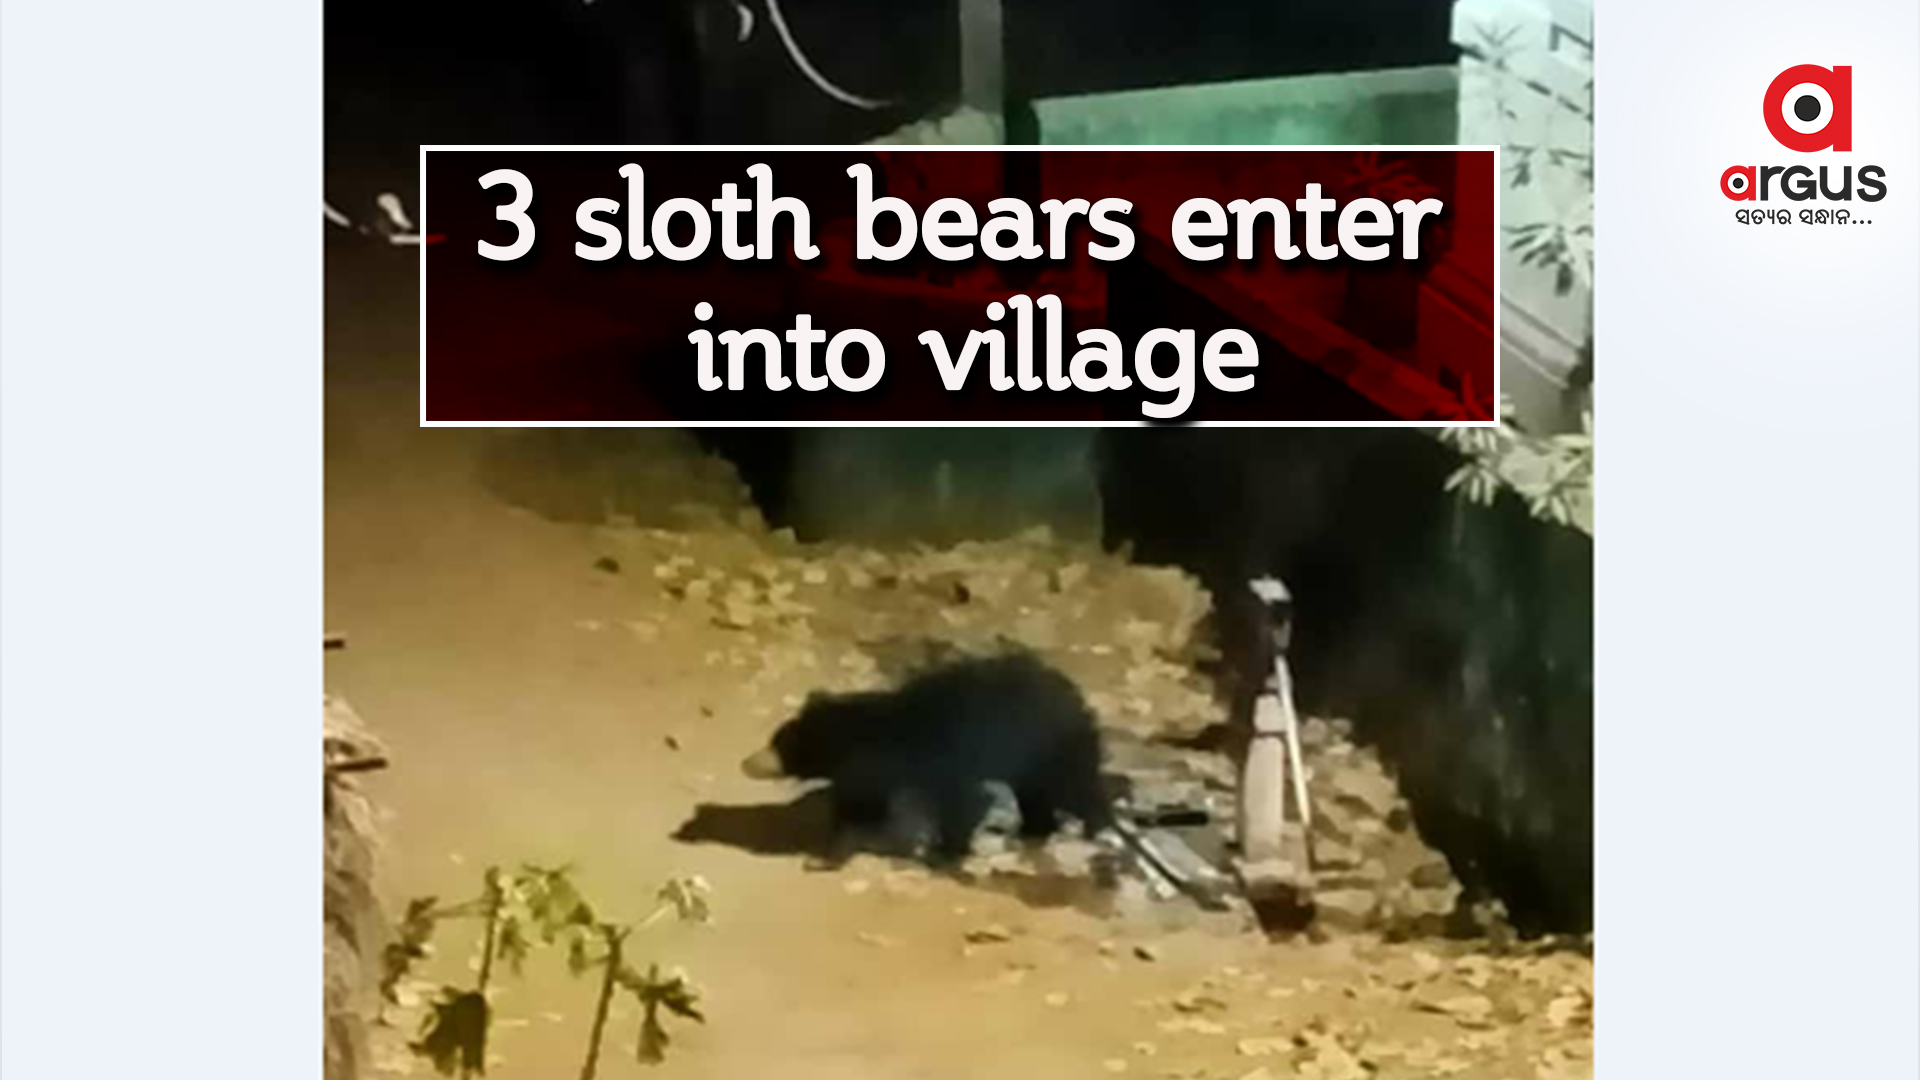 3 sloth bears enter into Keonjhar village, people in panic